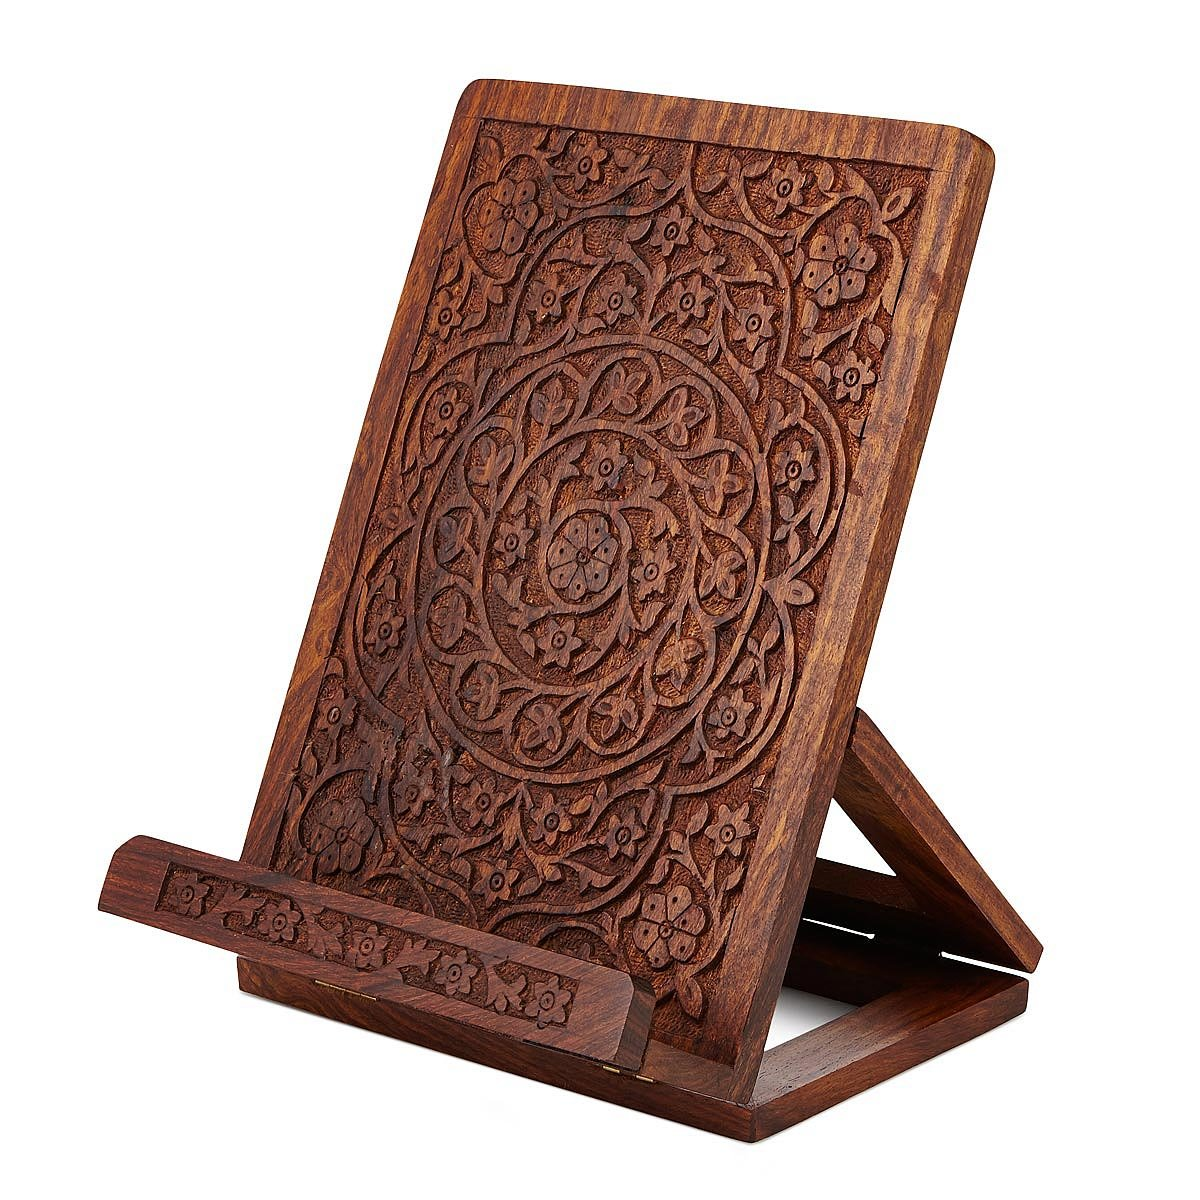 Hand Carved Wooden Cookbook Stand - Hand Carved Wooden Cookbook Stand Book Stand UncommonGoods